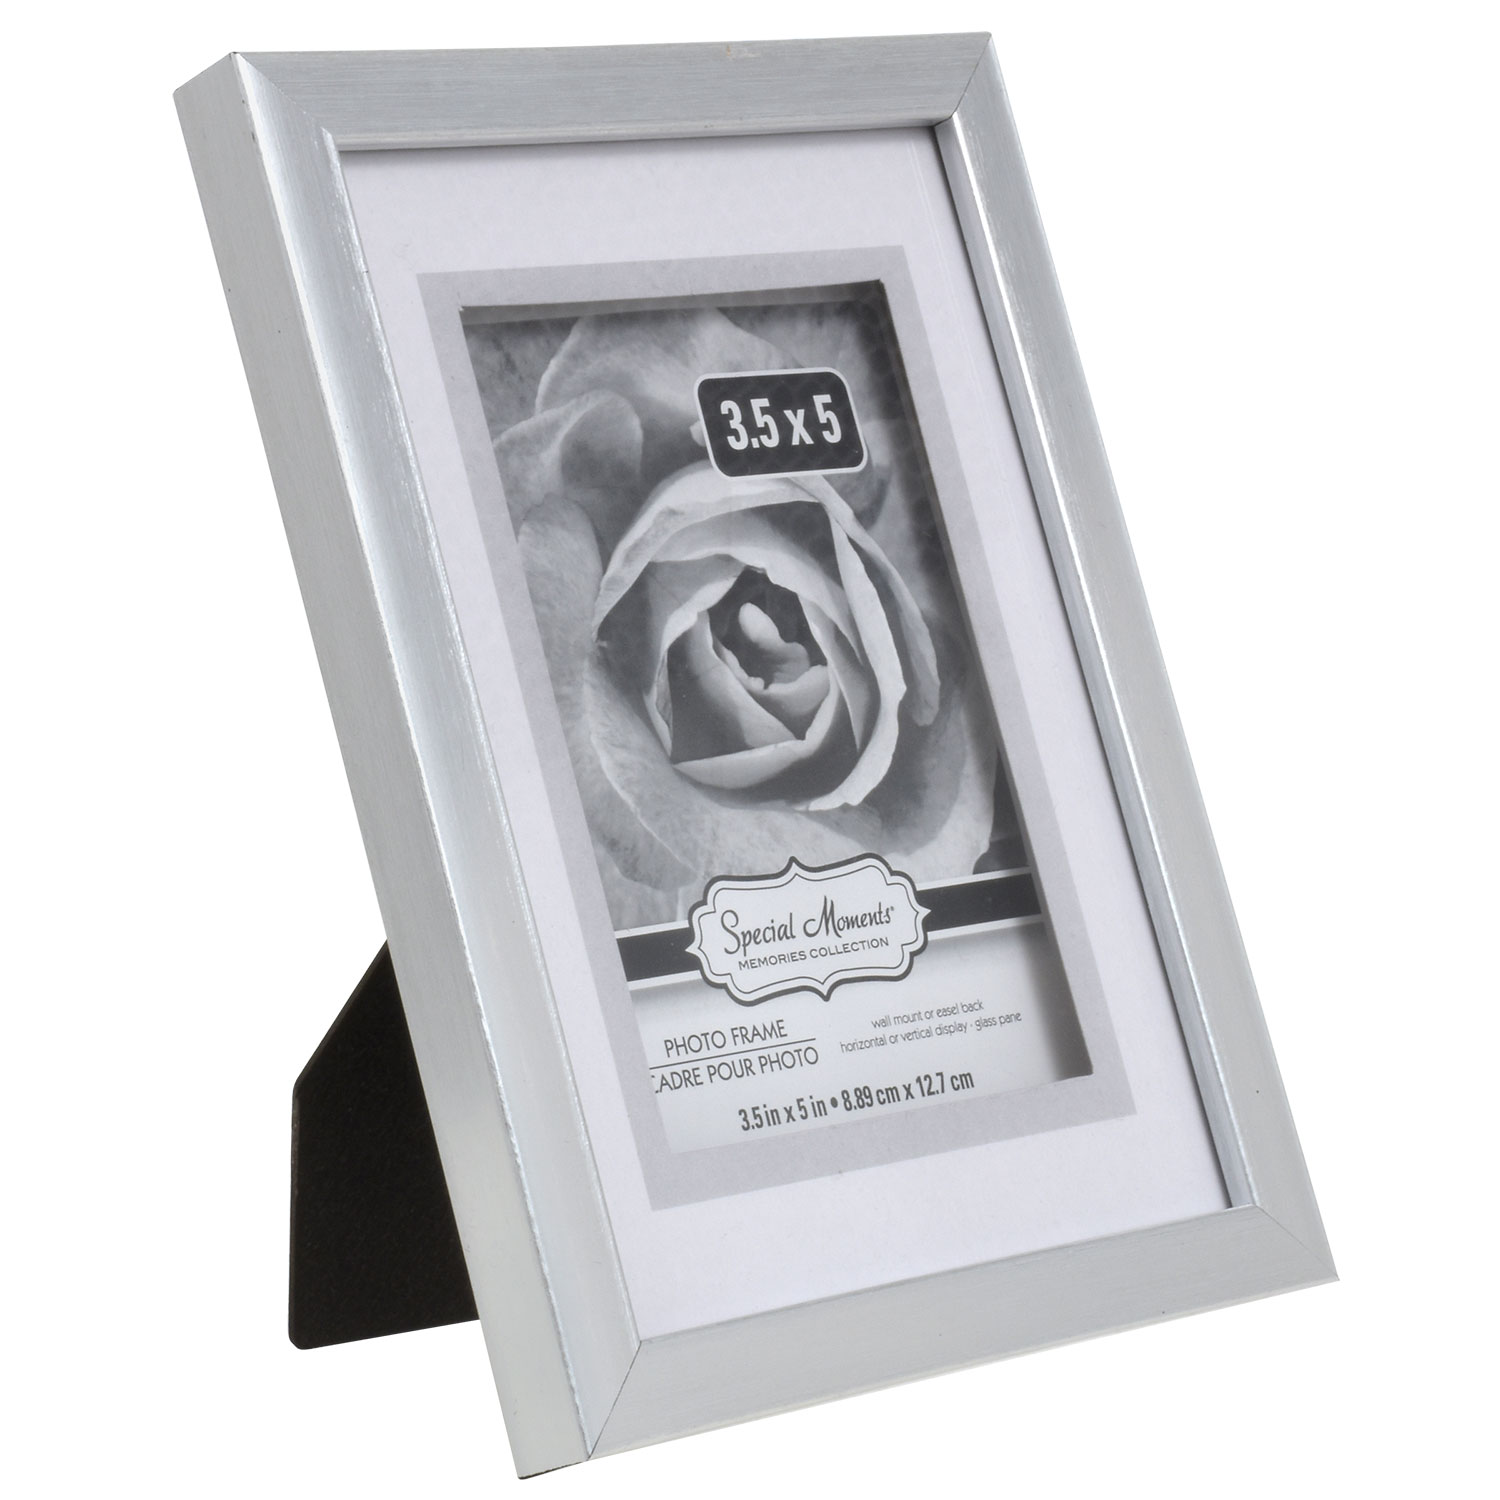 Dollartreecom Bulk Picture Frames